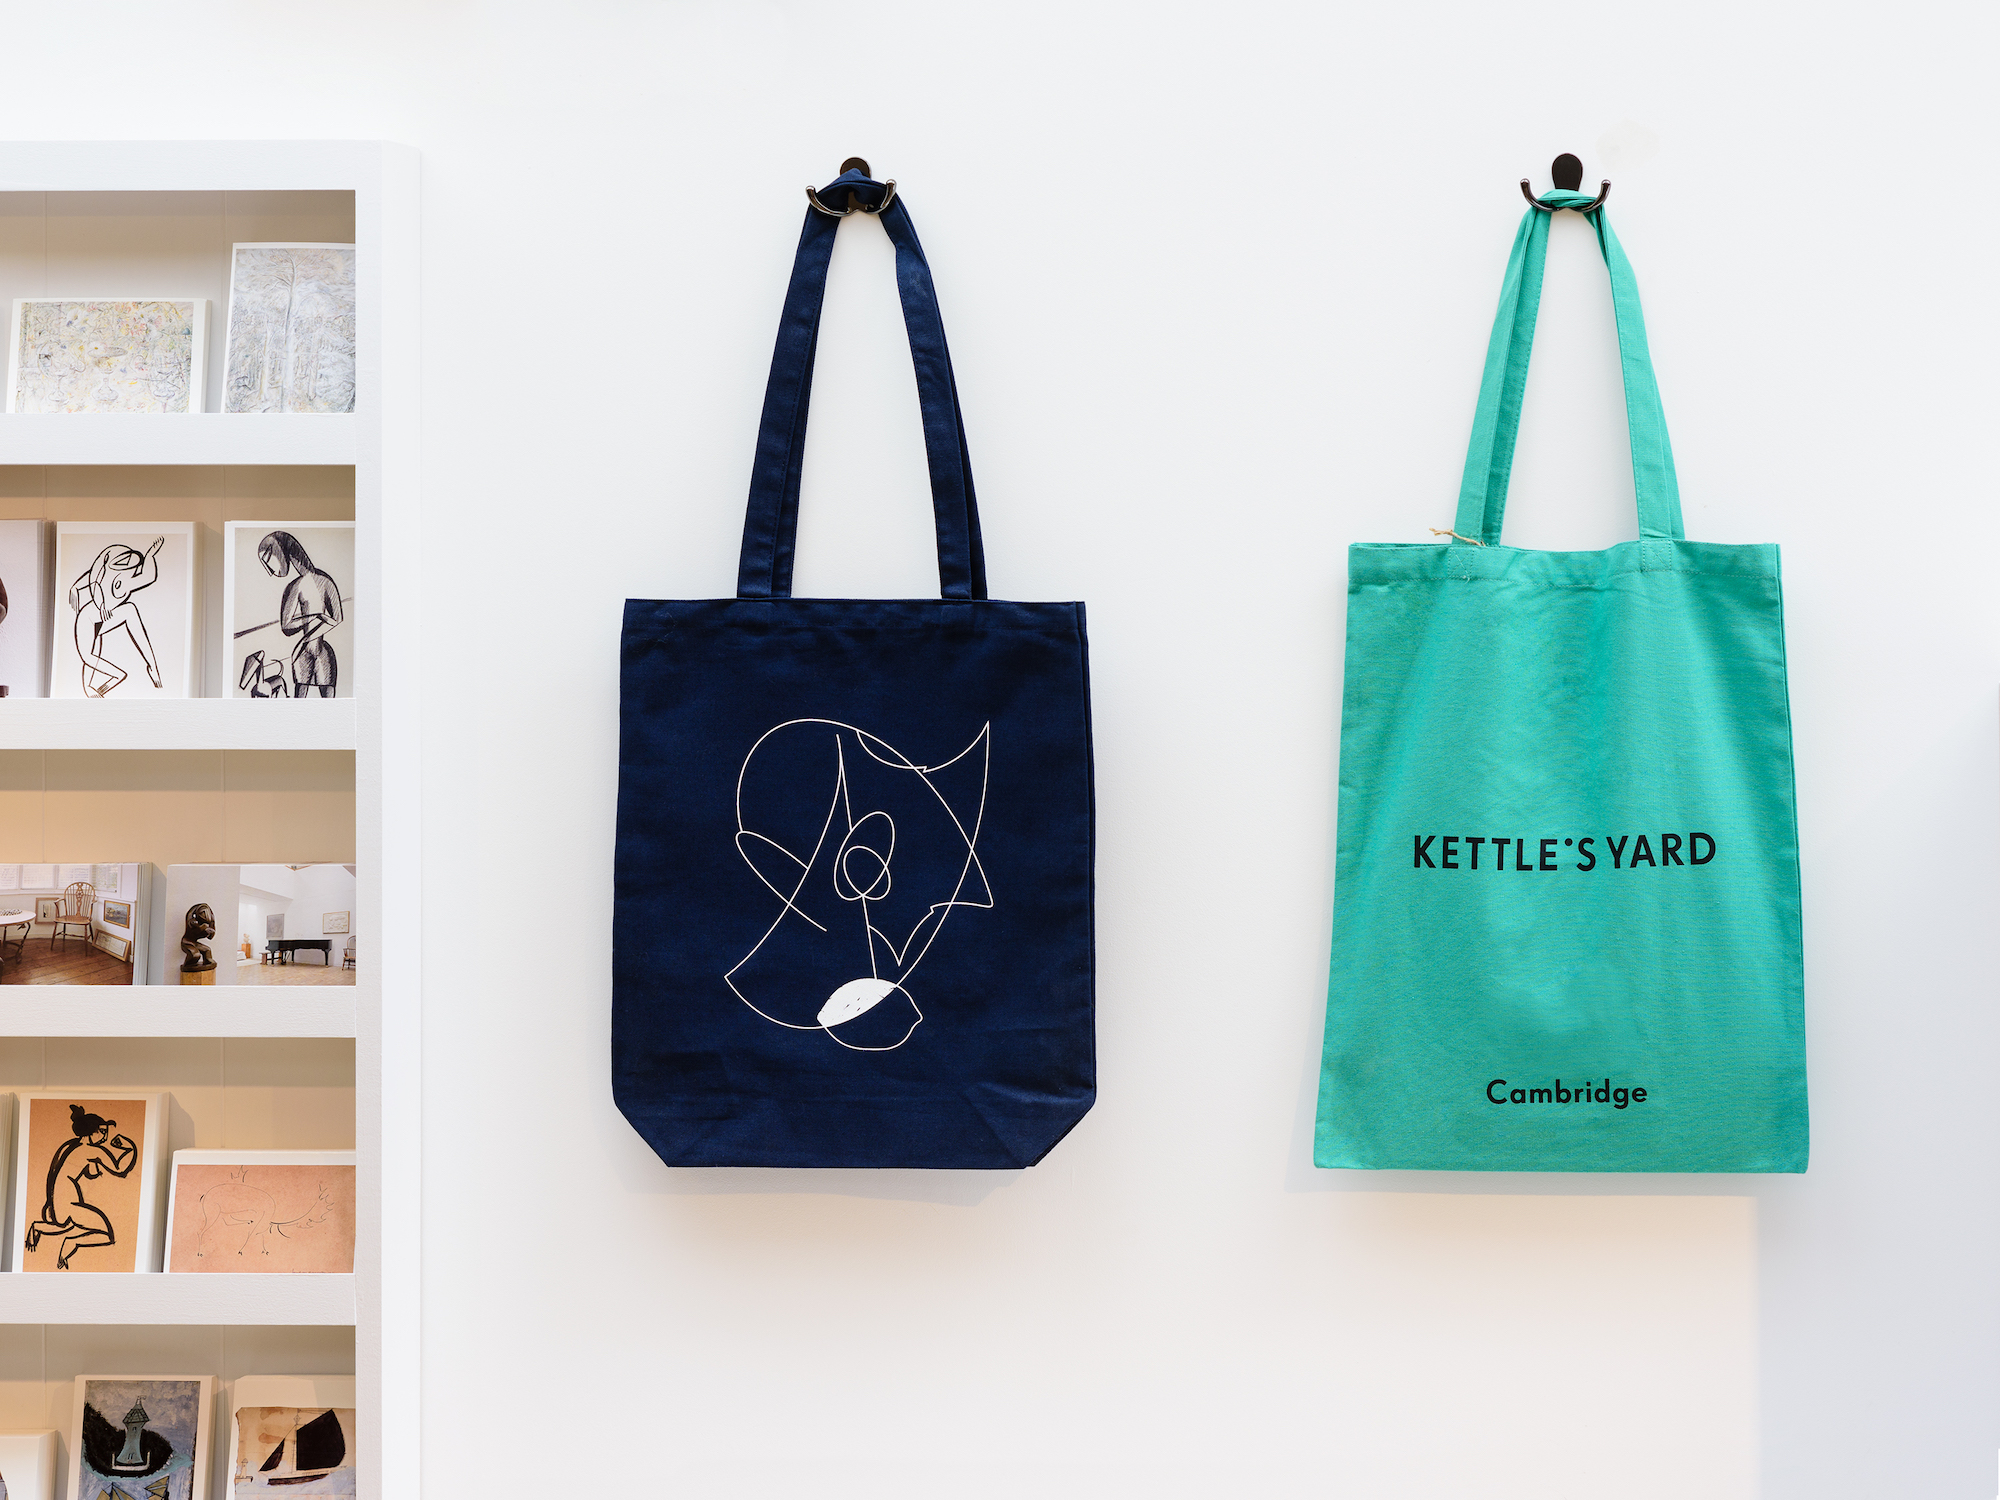 Kettle's Yard tote bag design by APFEL